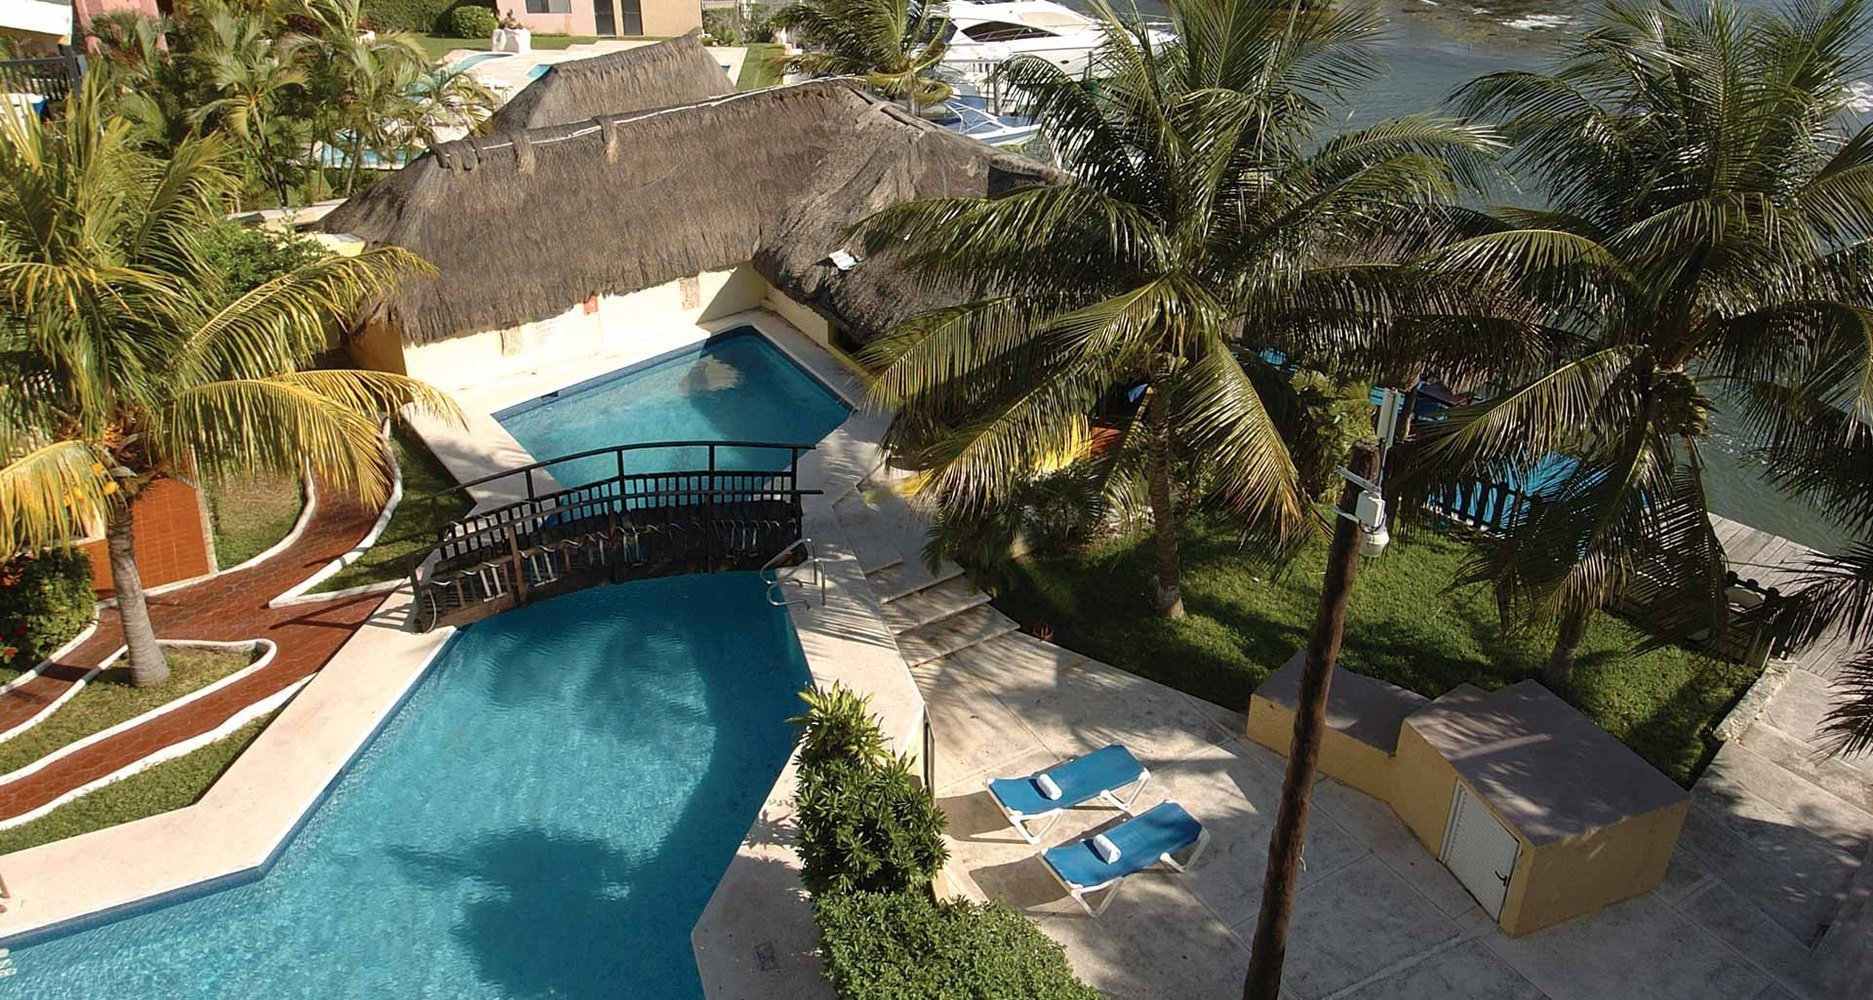 The best stay in the  hotel zone of cancun  hotel faranda imperial laguna cancún